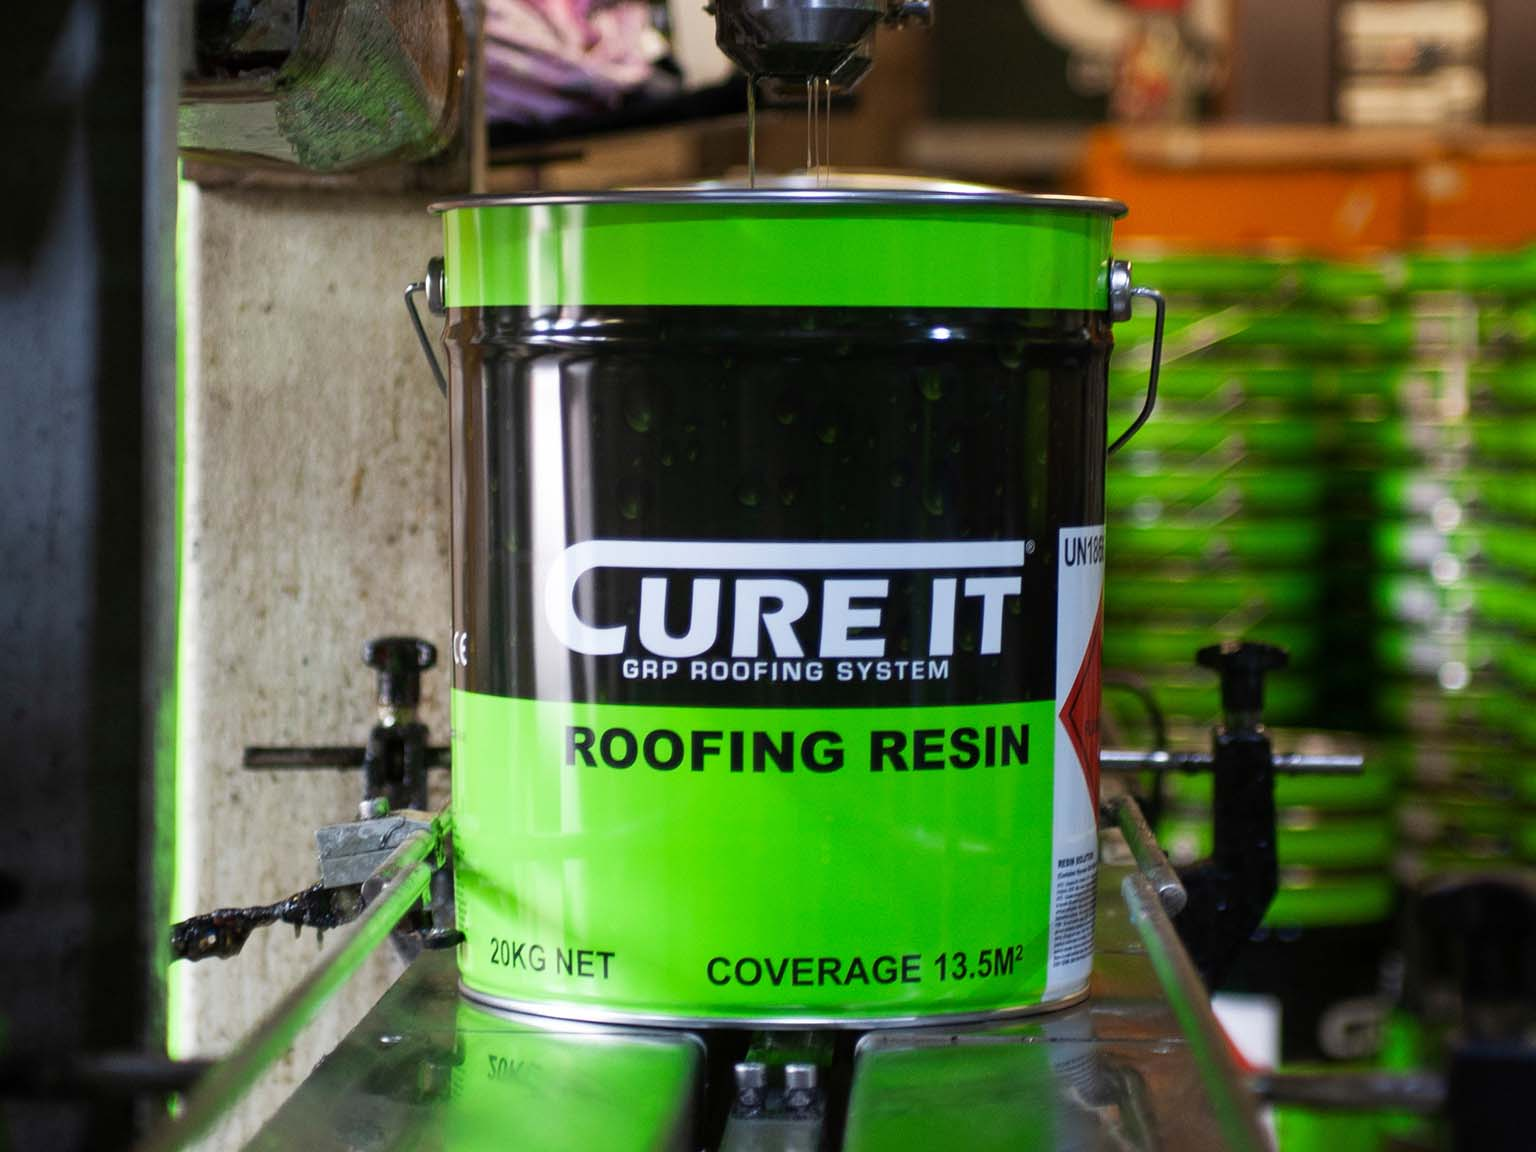 Manufacturing GRP Roofing Systems